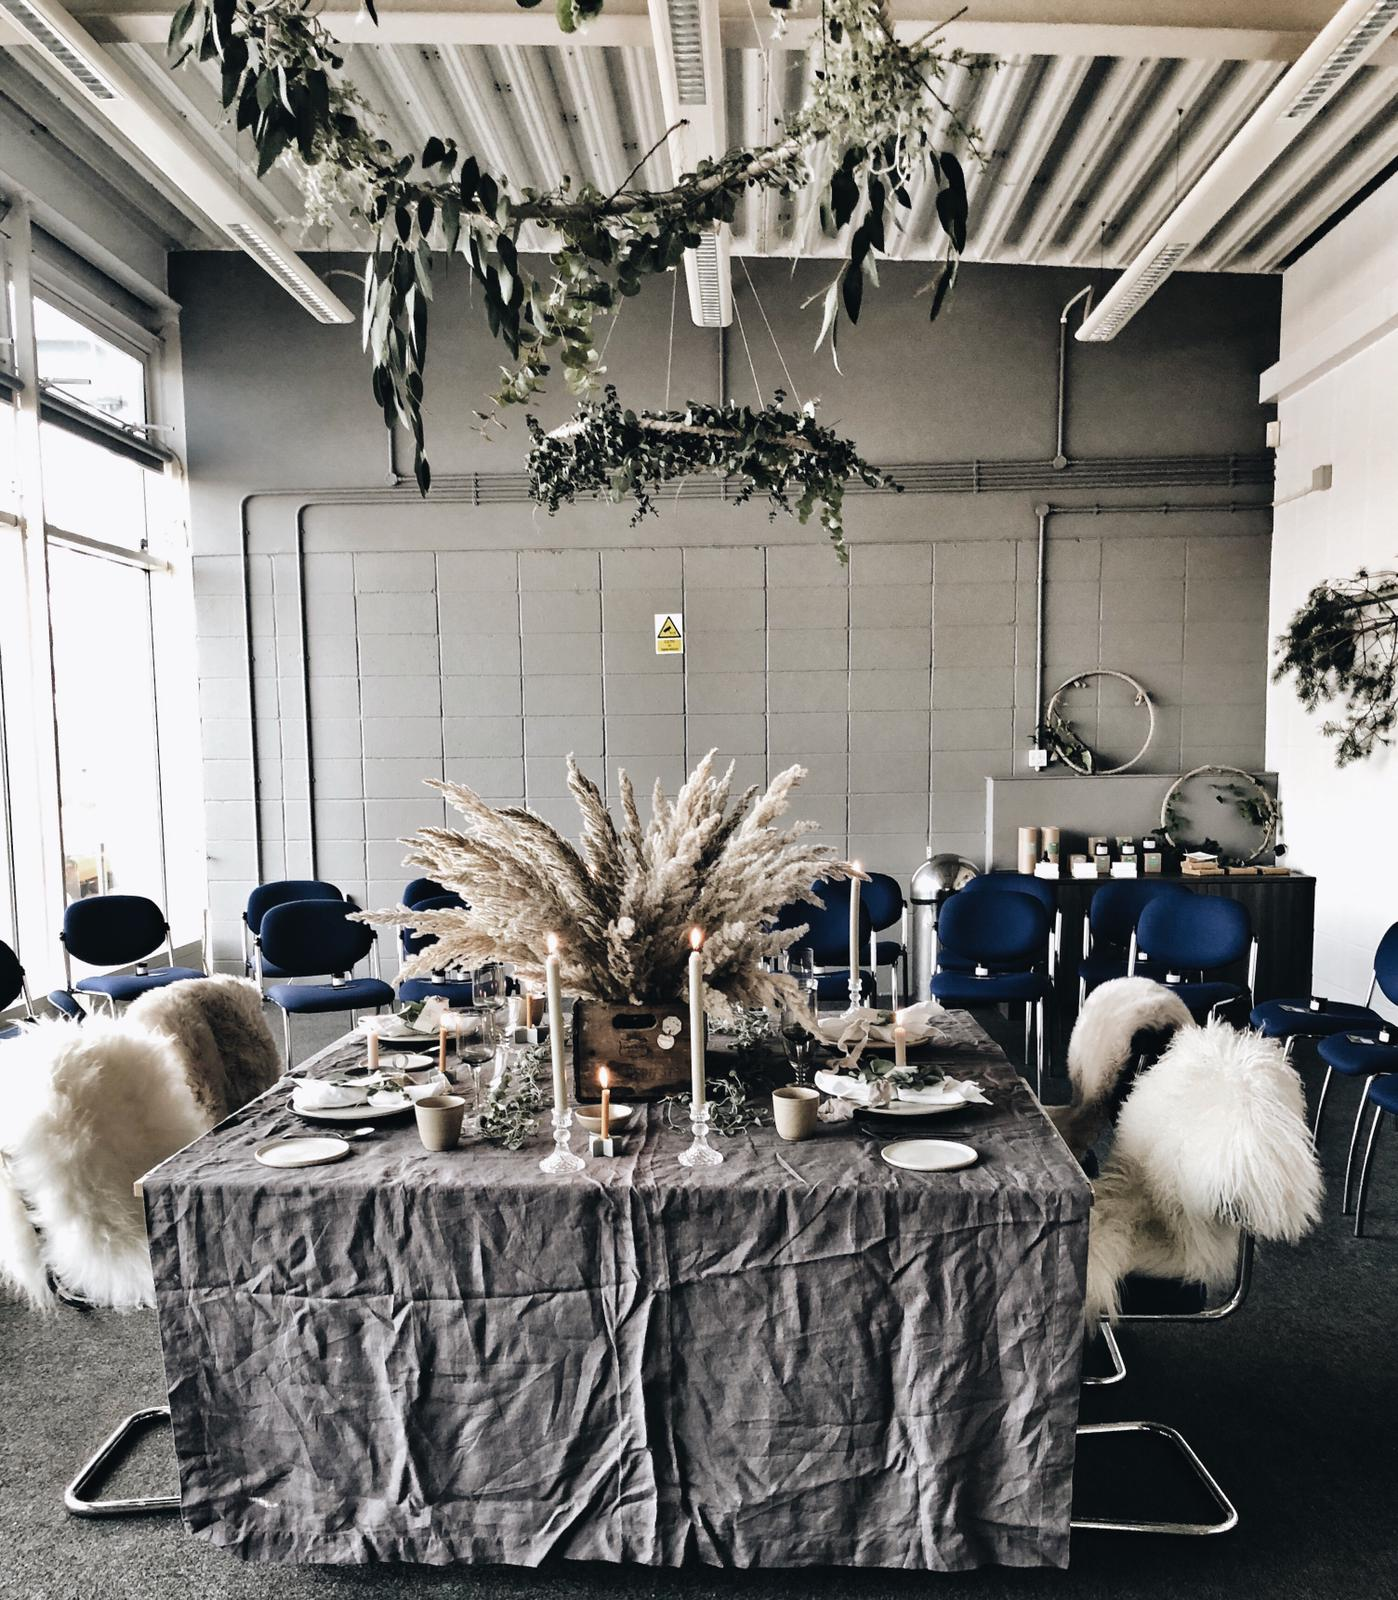 We were working with quite a big space so went for a dramatic table centre piece using pampas grass and made the table cosier by adding sheepskins to our chairs from Jord Home